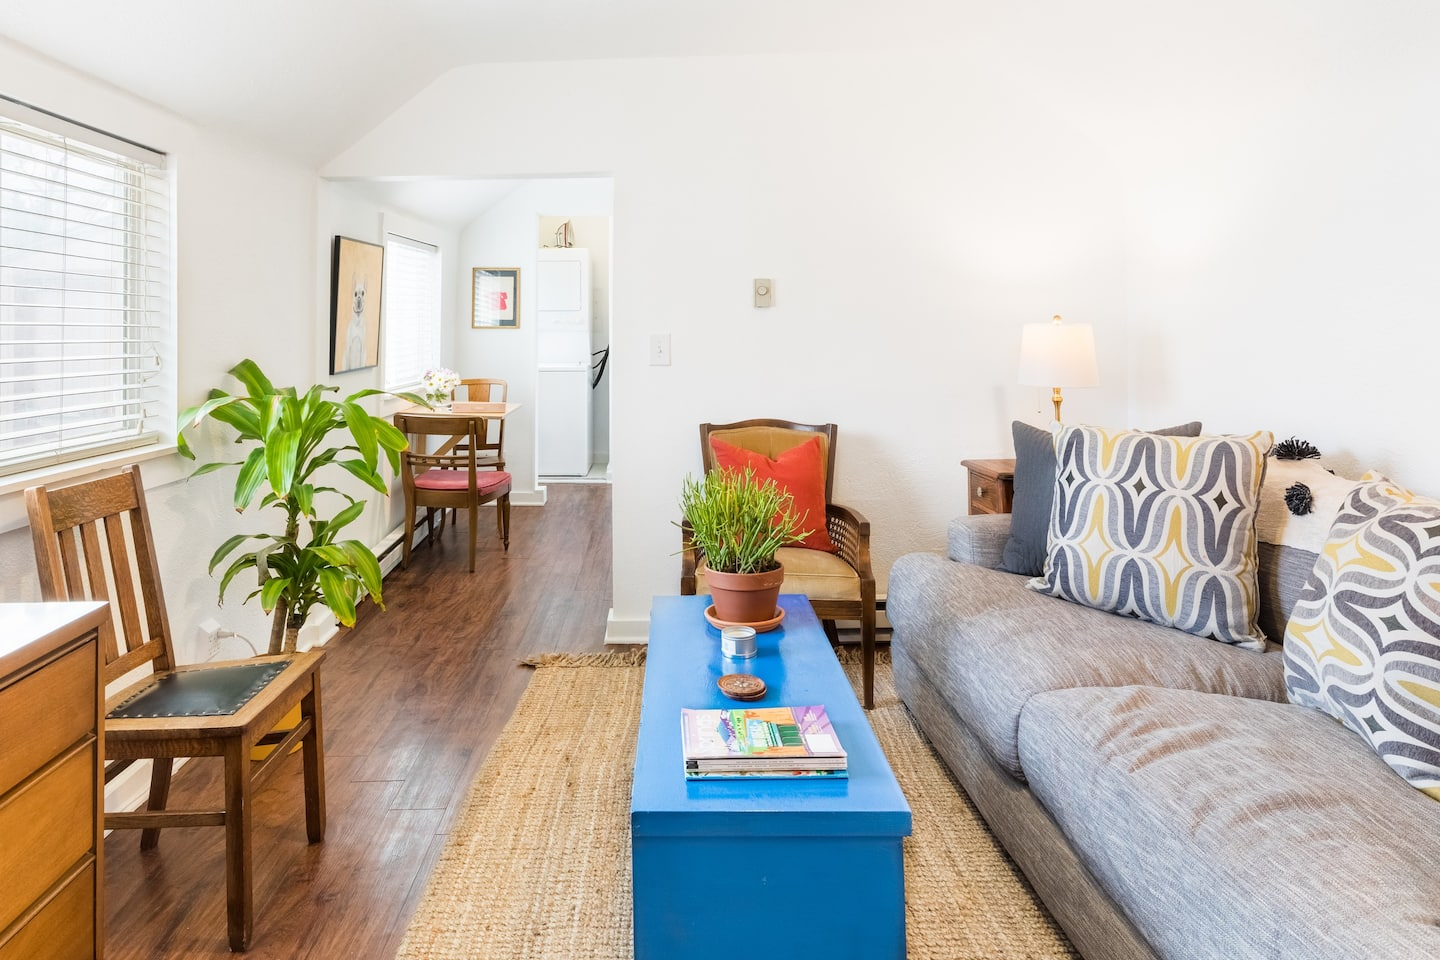 Affordable Airbnb in Colorado Springs